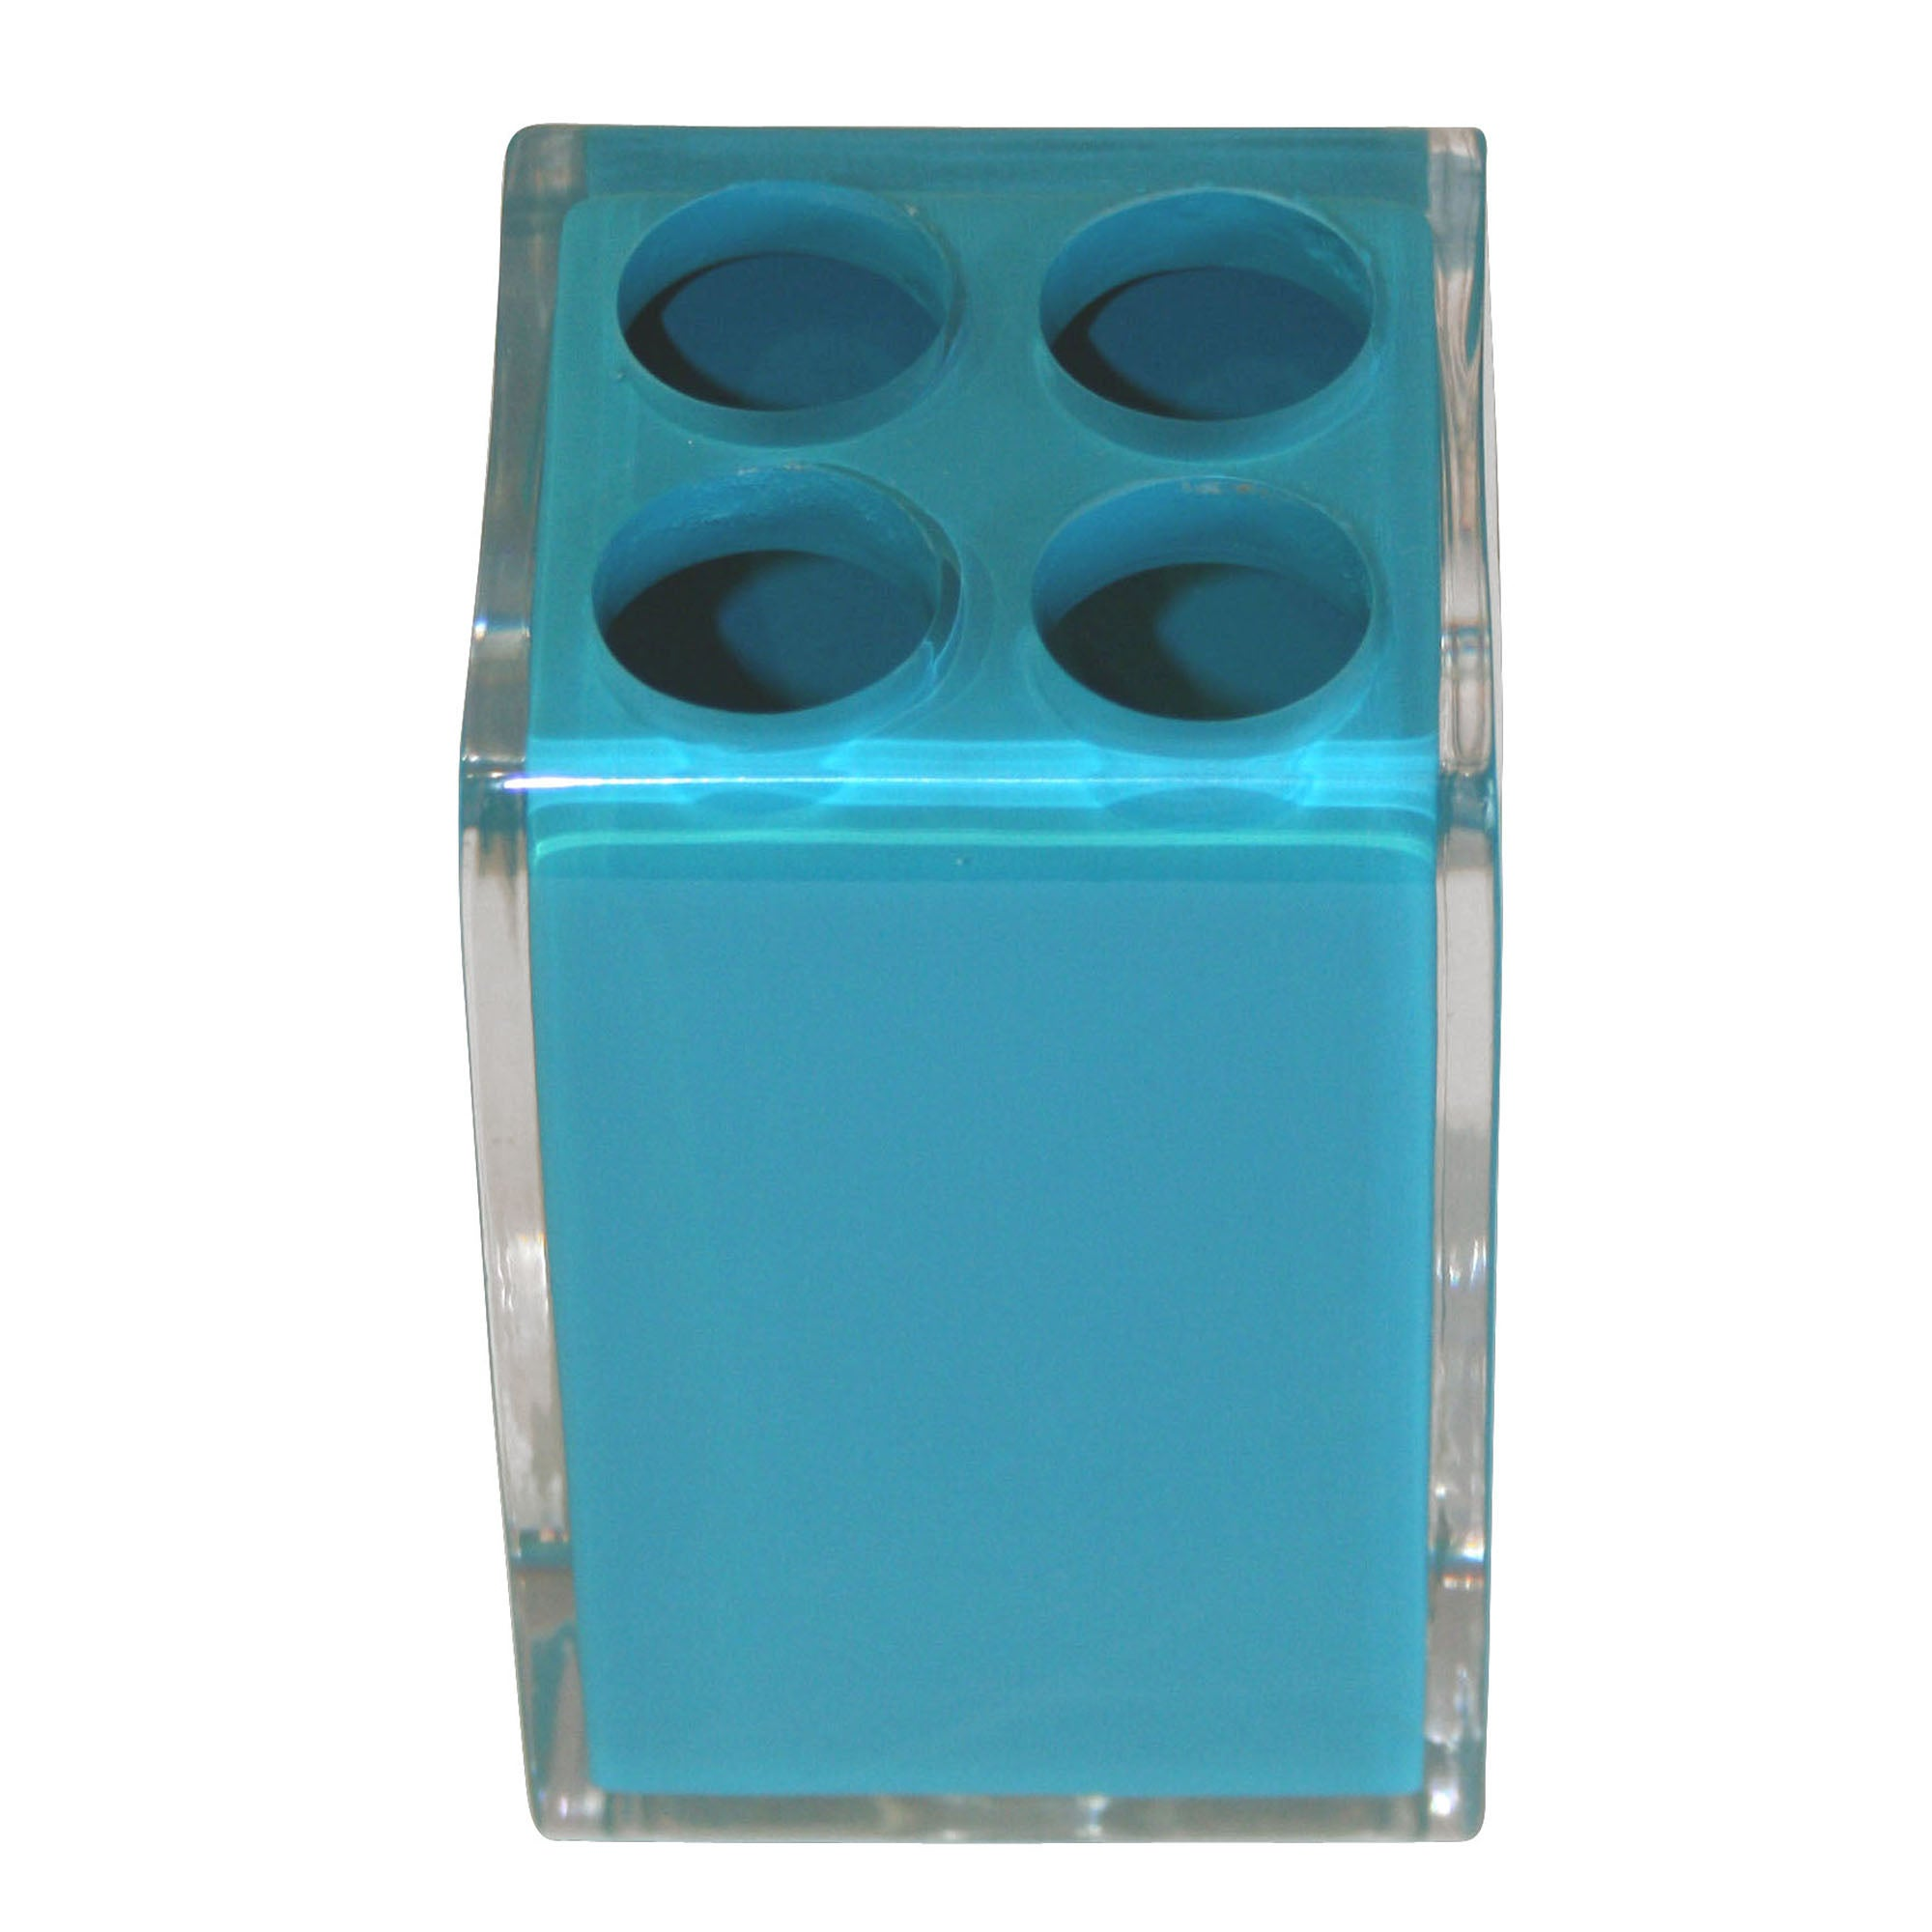 Teal Brights Collection Acrylic Toothbrush Holder